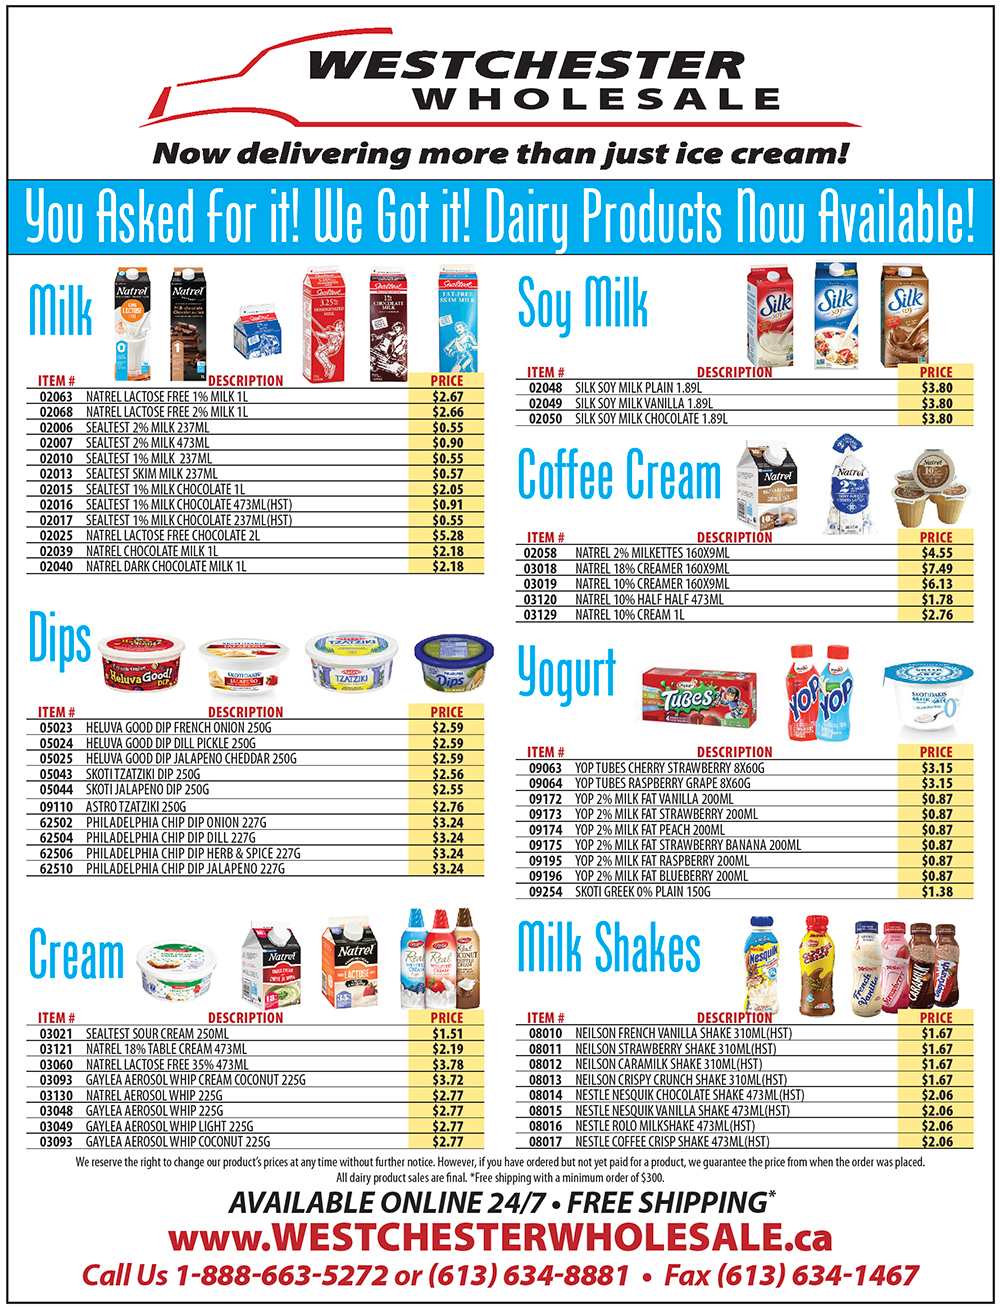 Dairy products now available